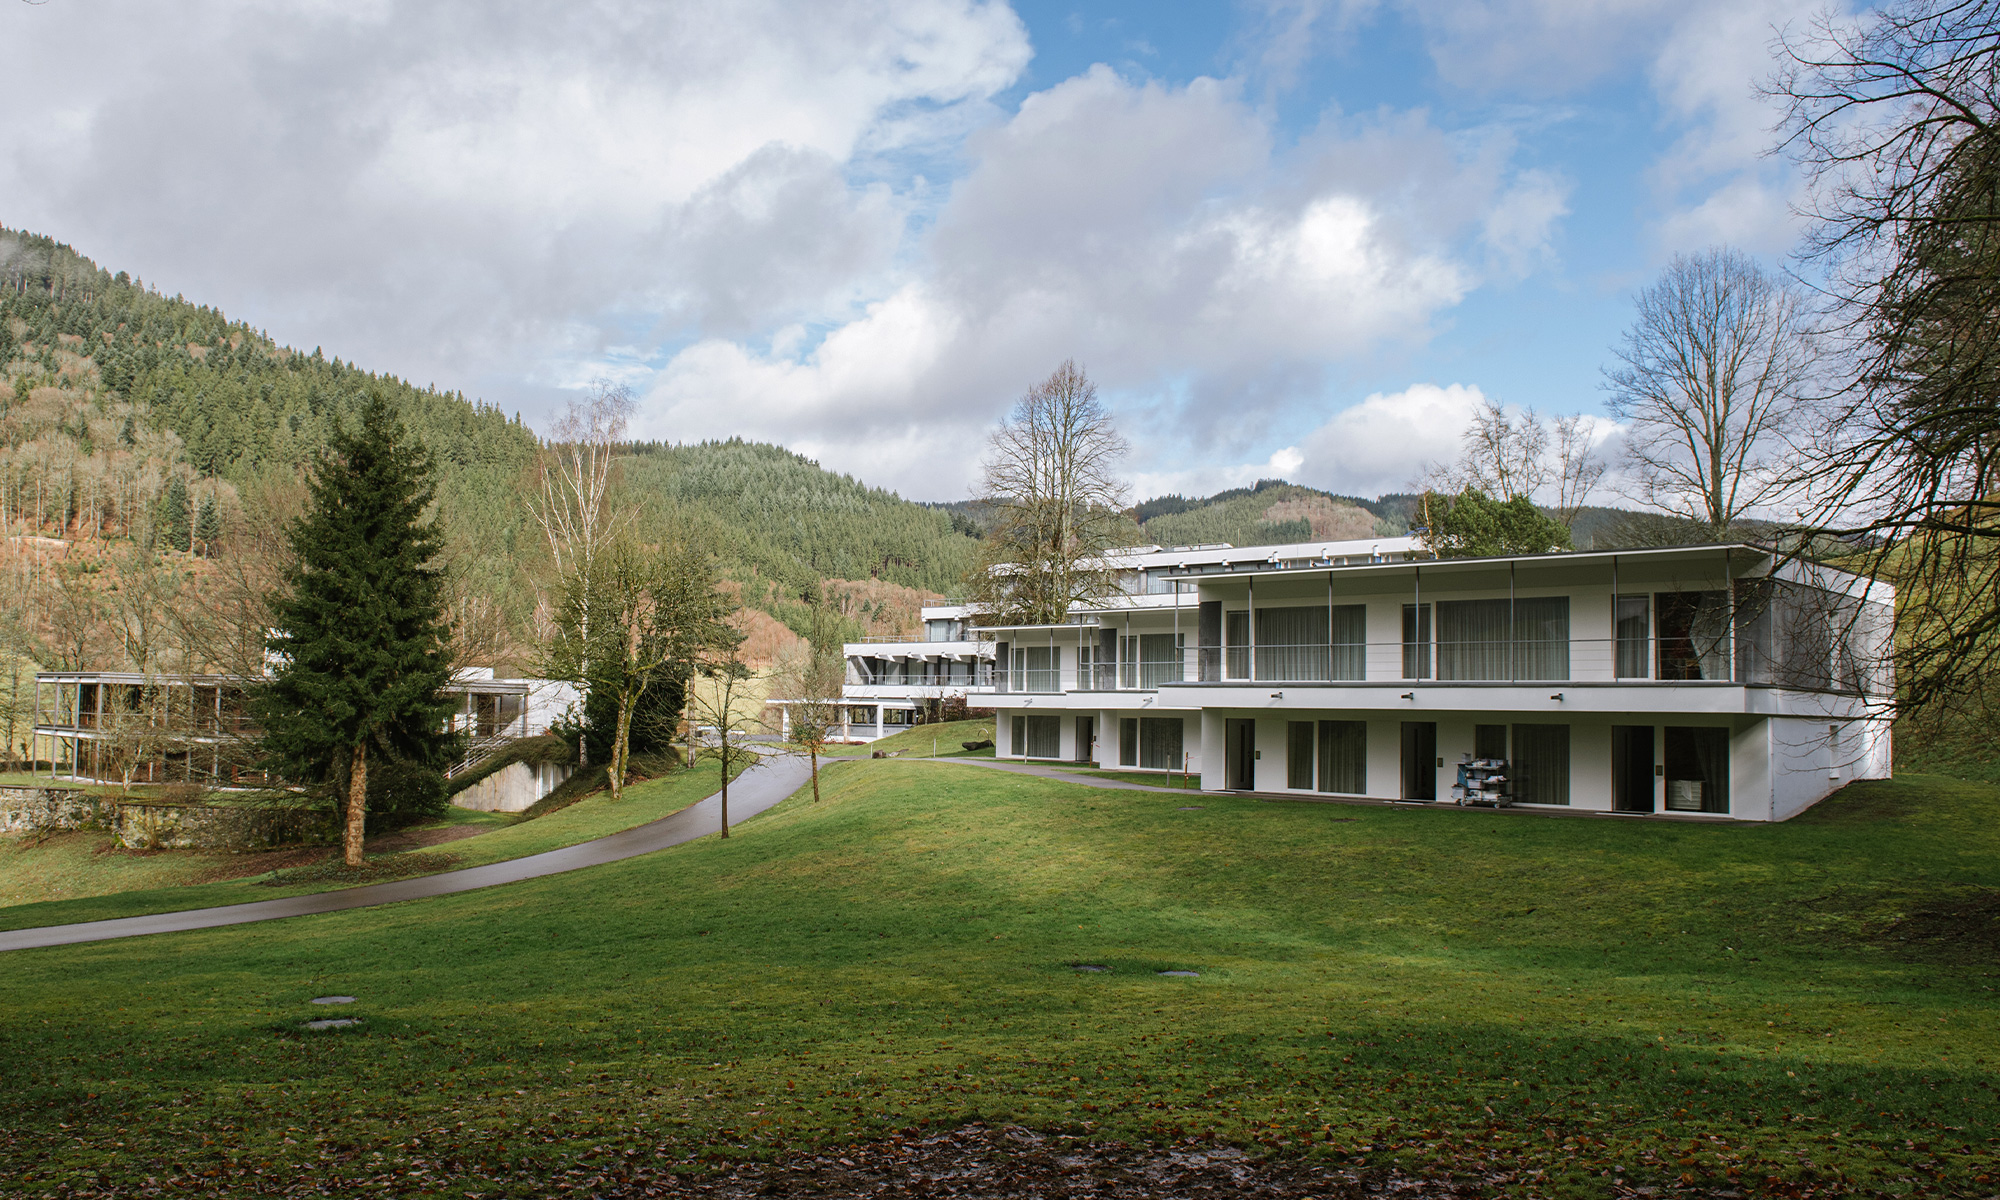 Photo of Oberwolfach buildings set against green hills and trees